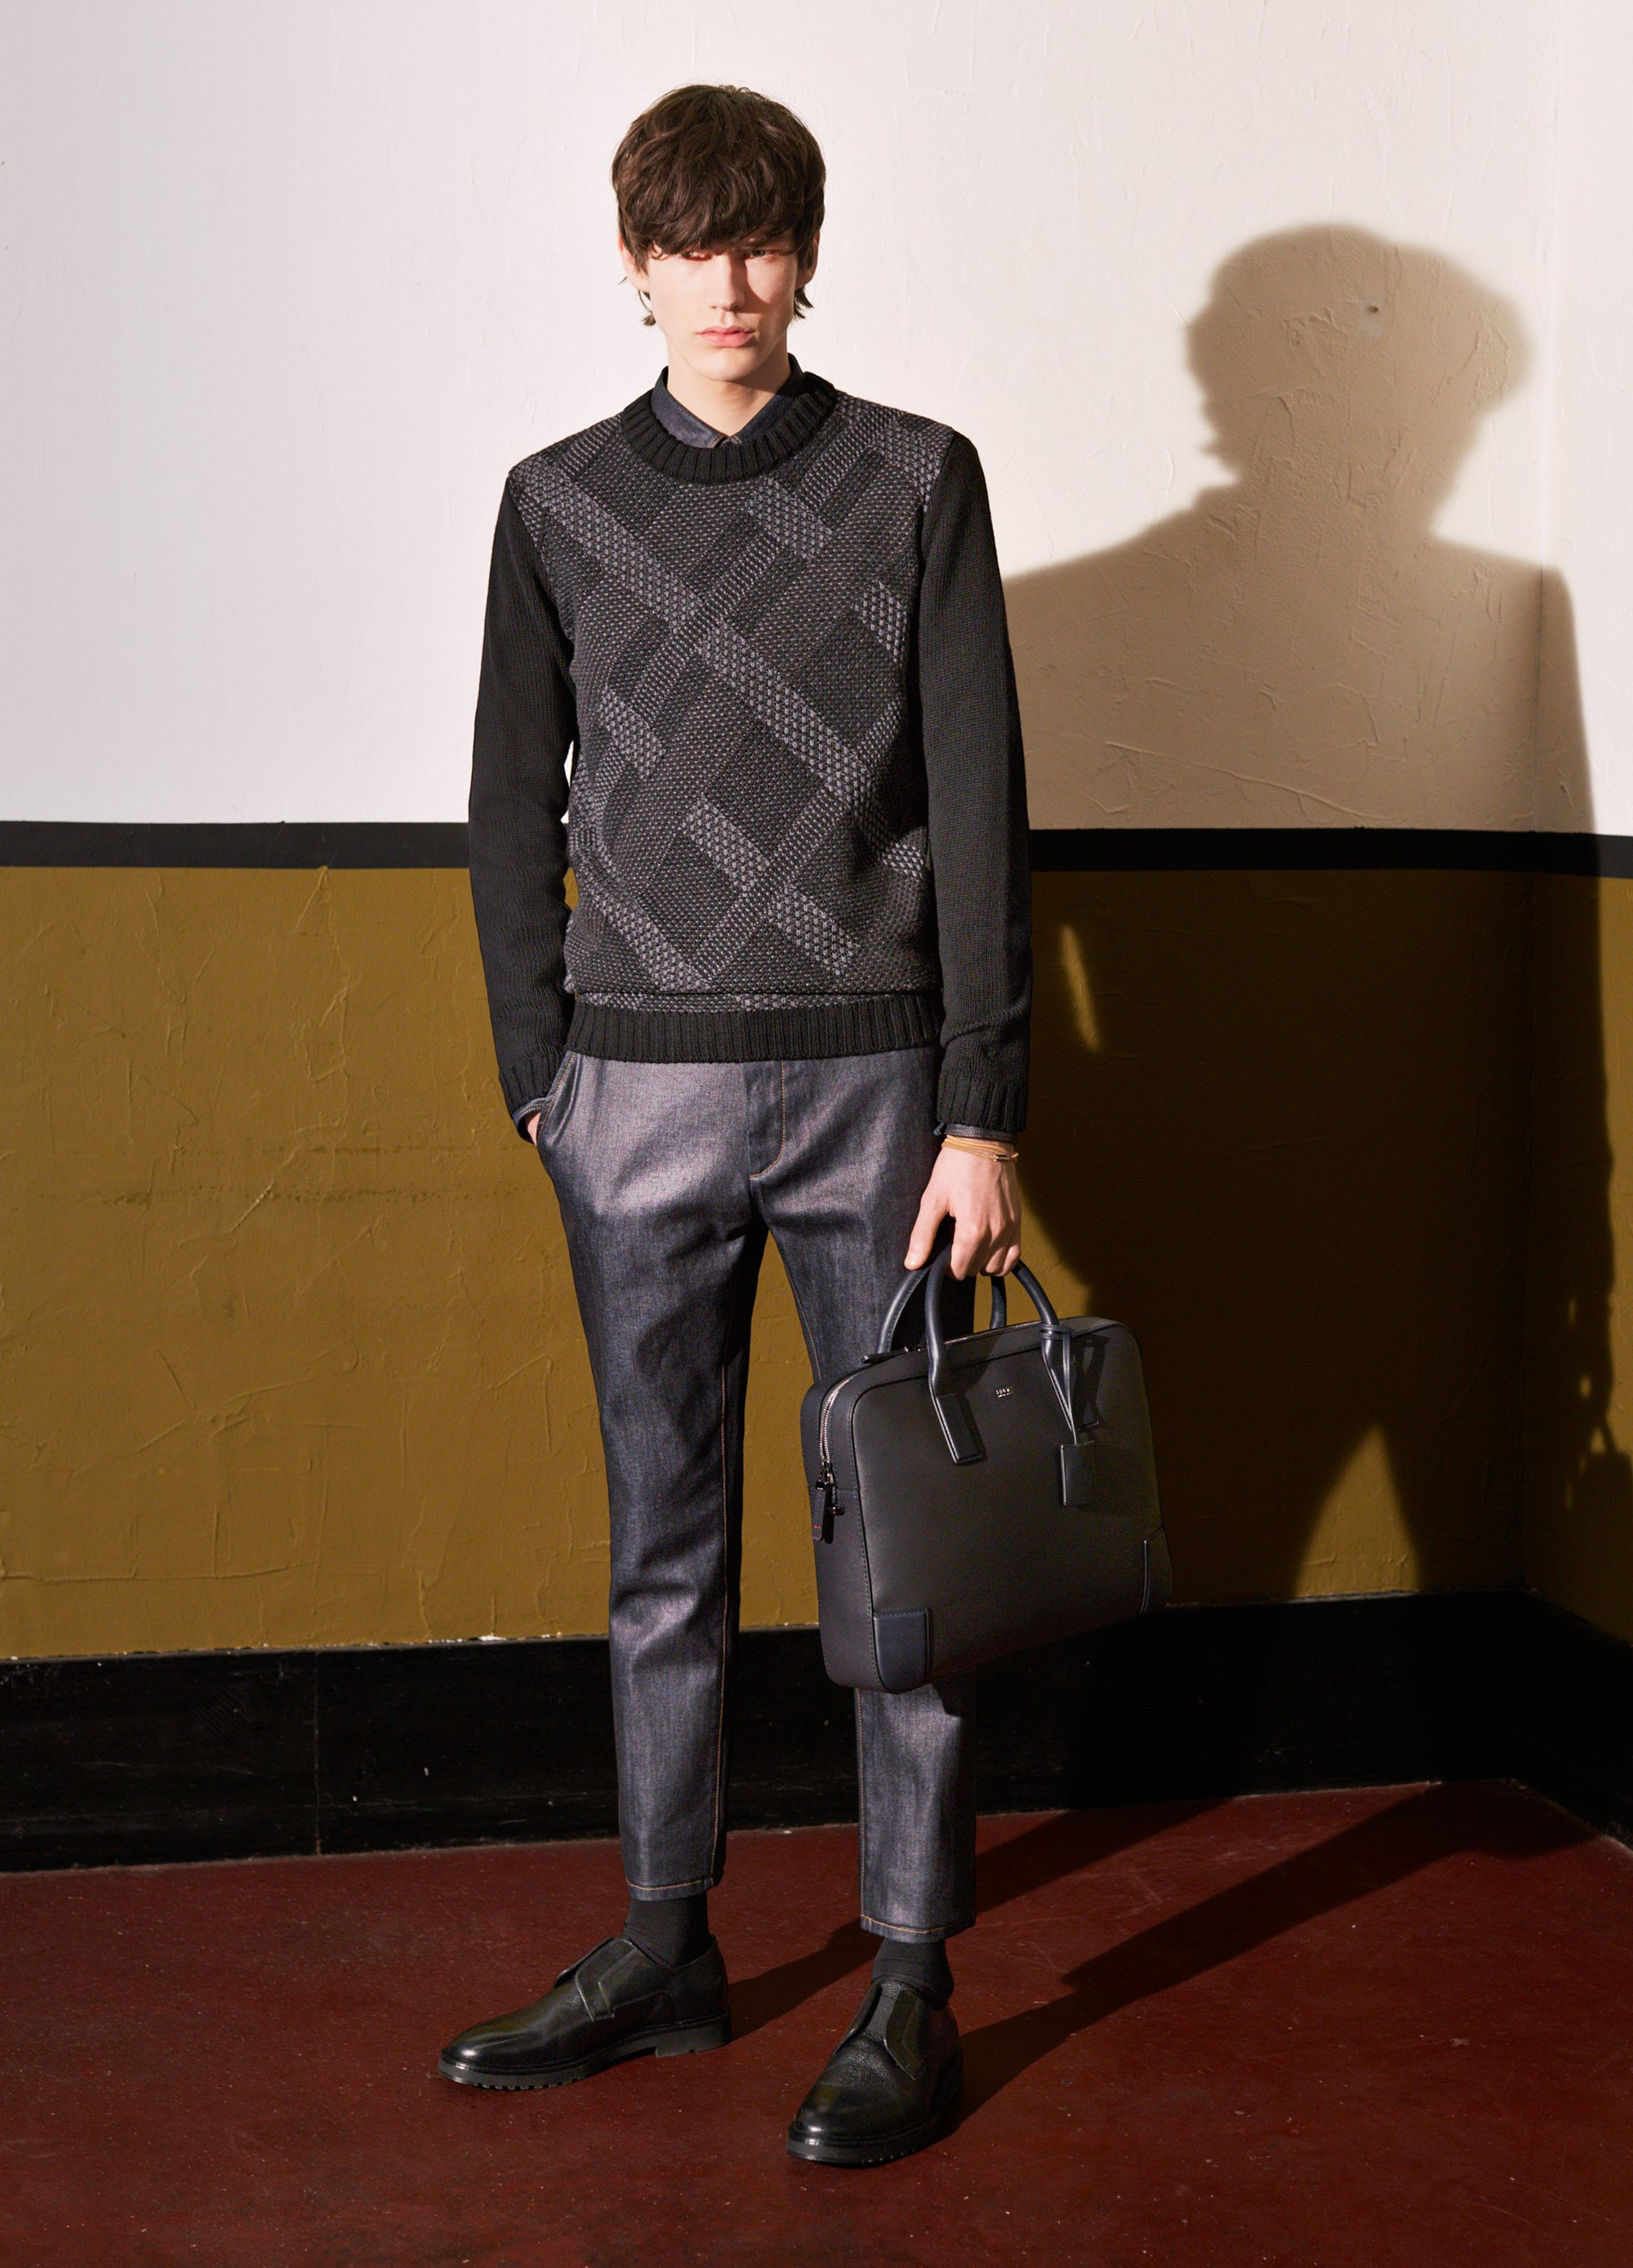 Checked jumper, grey pants, black bag and shoes by HUGO